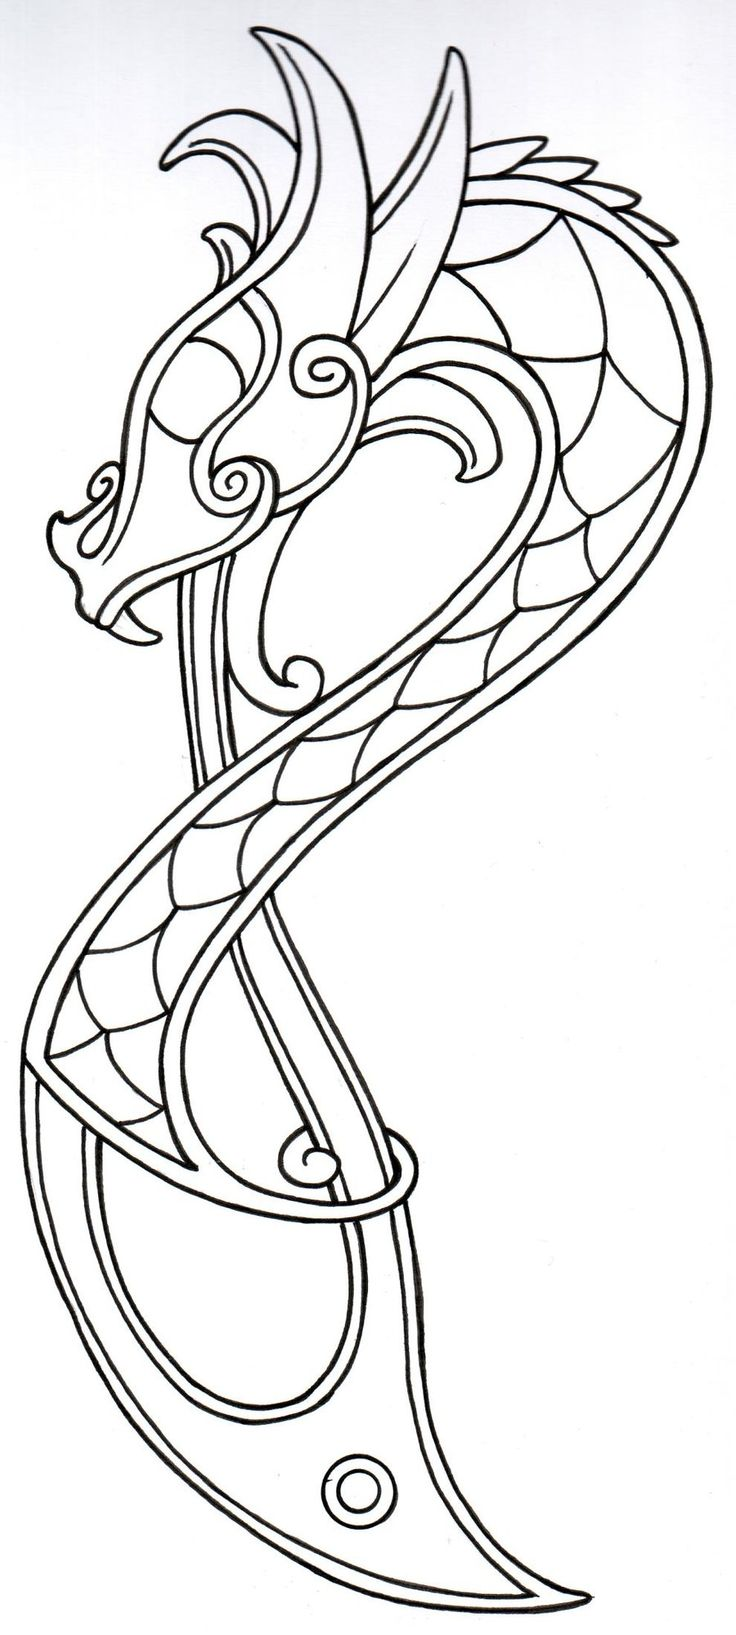 Viking Dragon Outline2 by vikingtattoo.deviantart.com on @deviantART